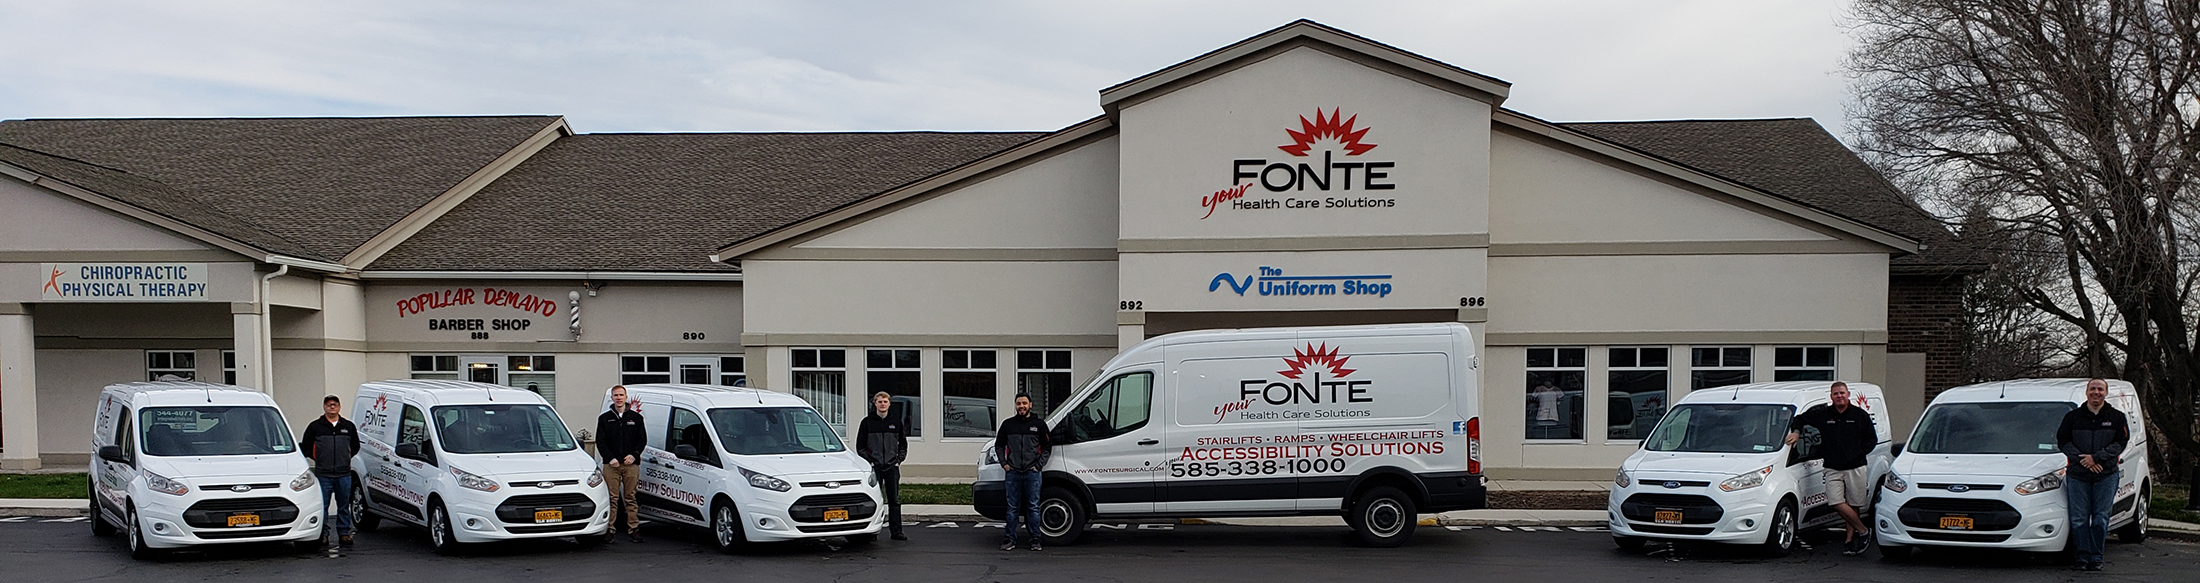 Fonte Surgical Supply - Your Health Care Solutions